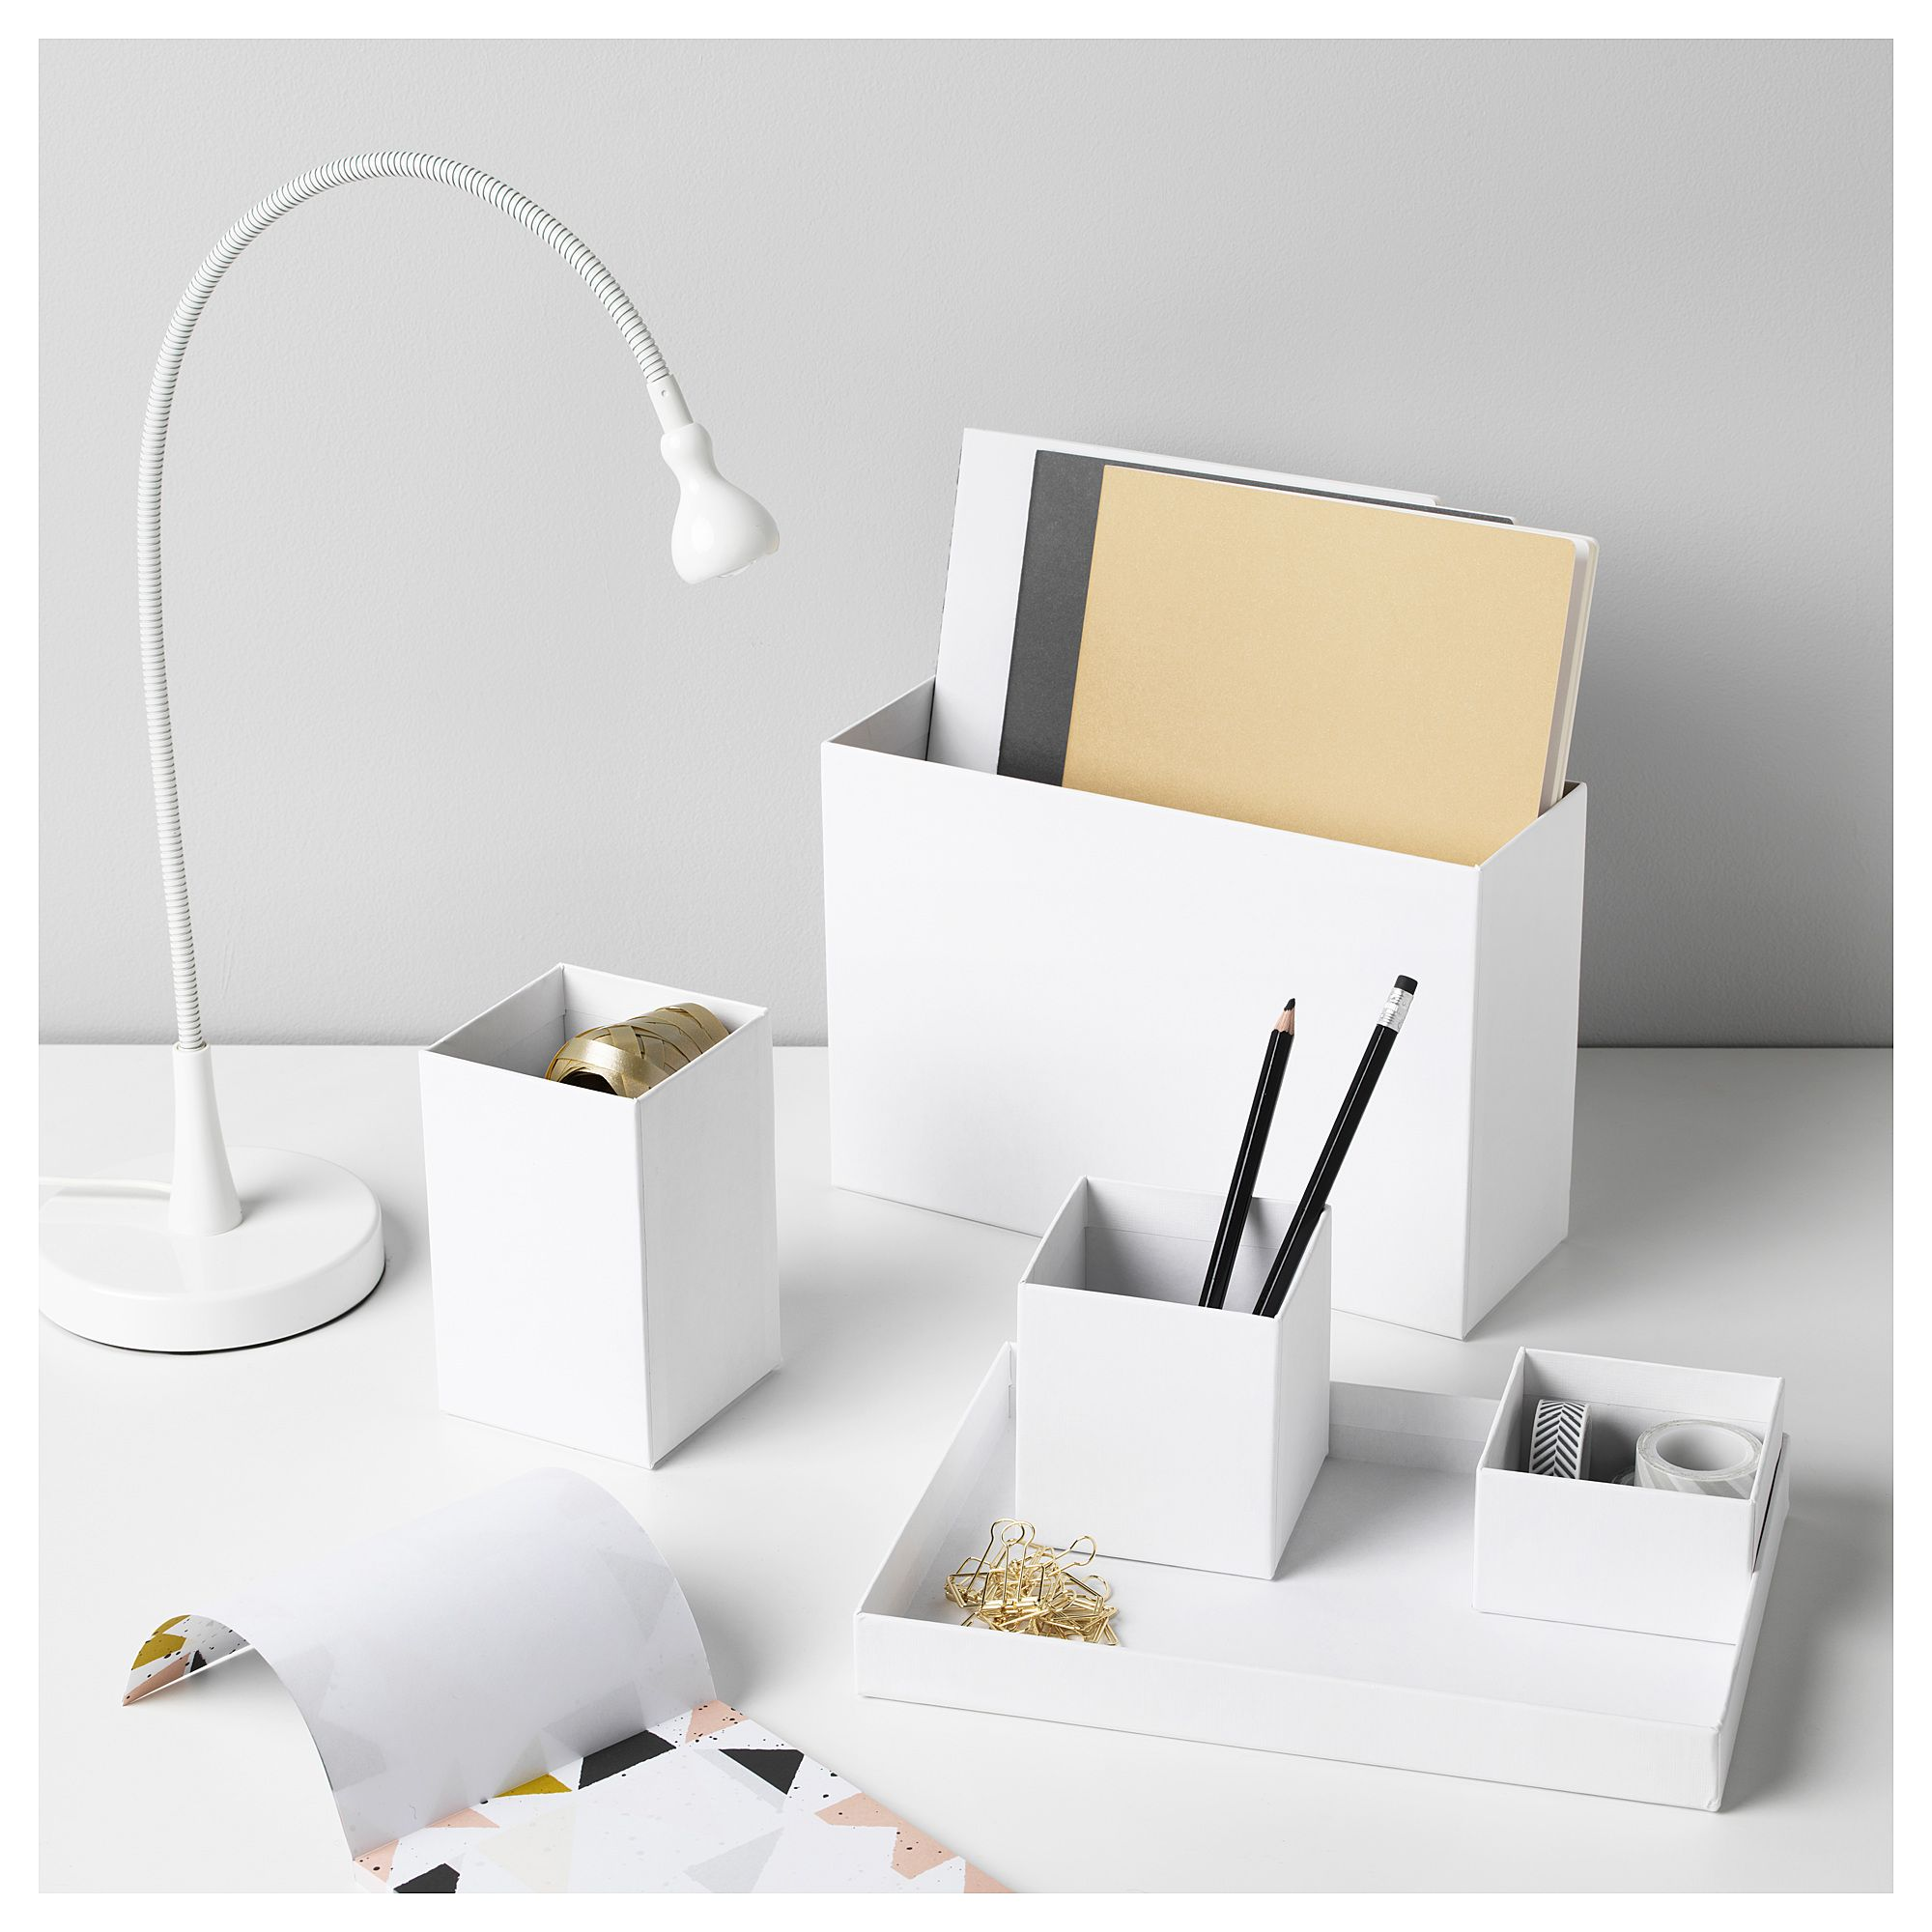 Tjena Desk Organizer White Ikea Desk Organization Ikea White Desk Organiser Desk Organization